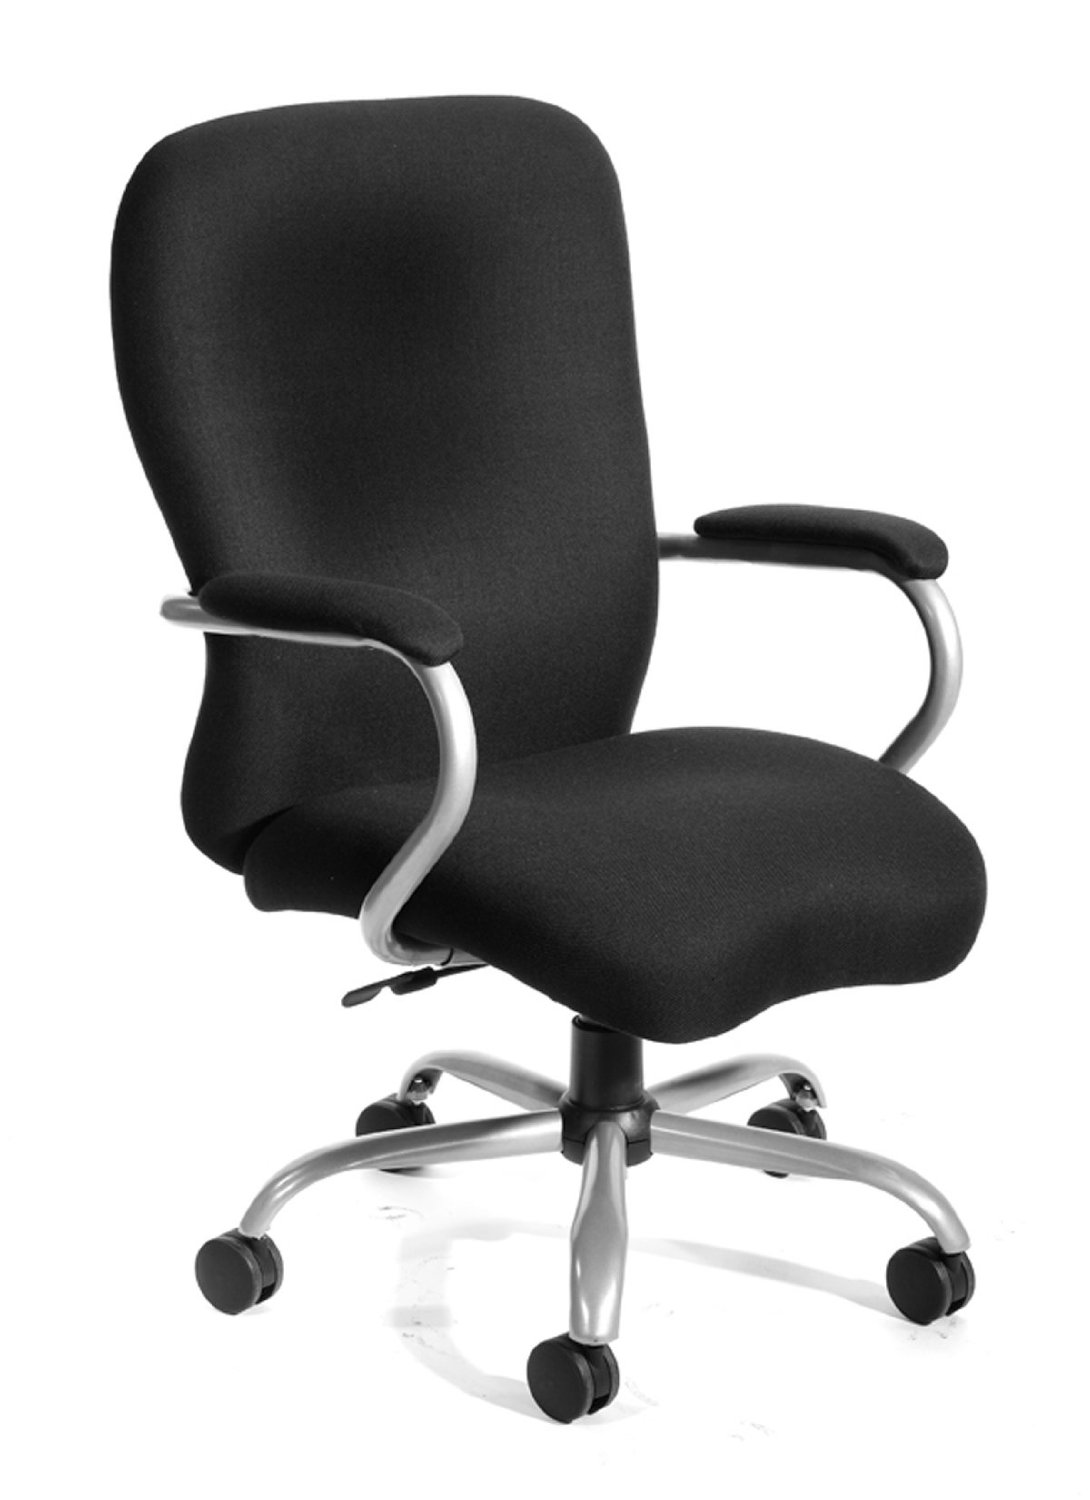 The Best BOSS Office Chairs